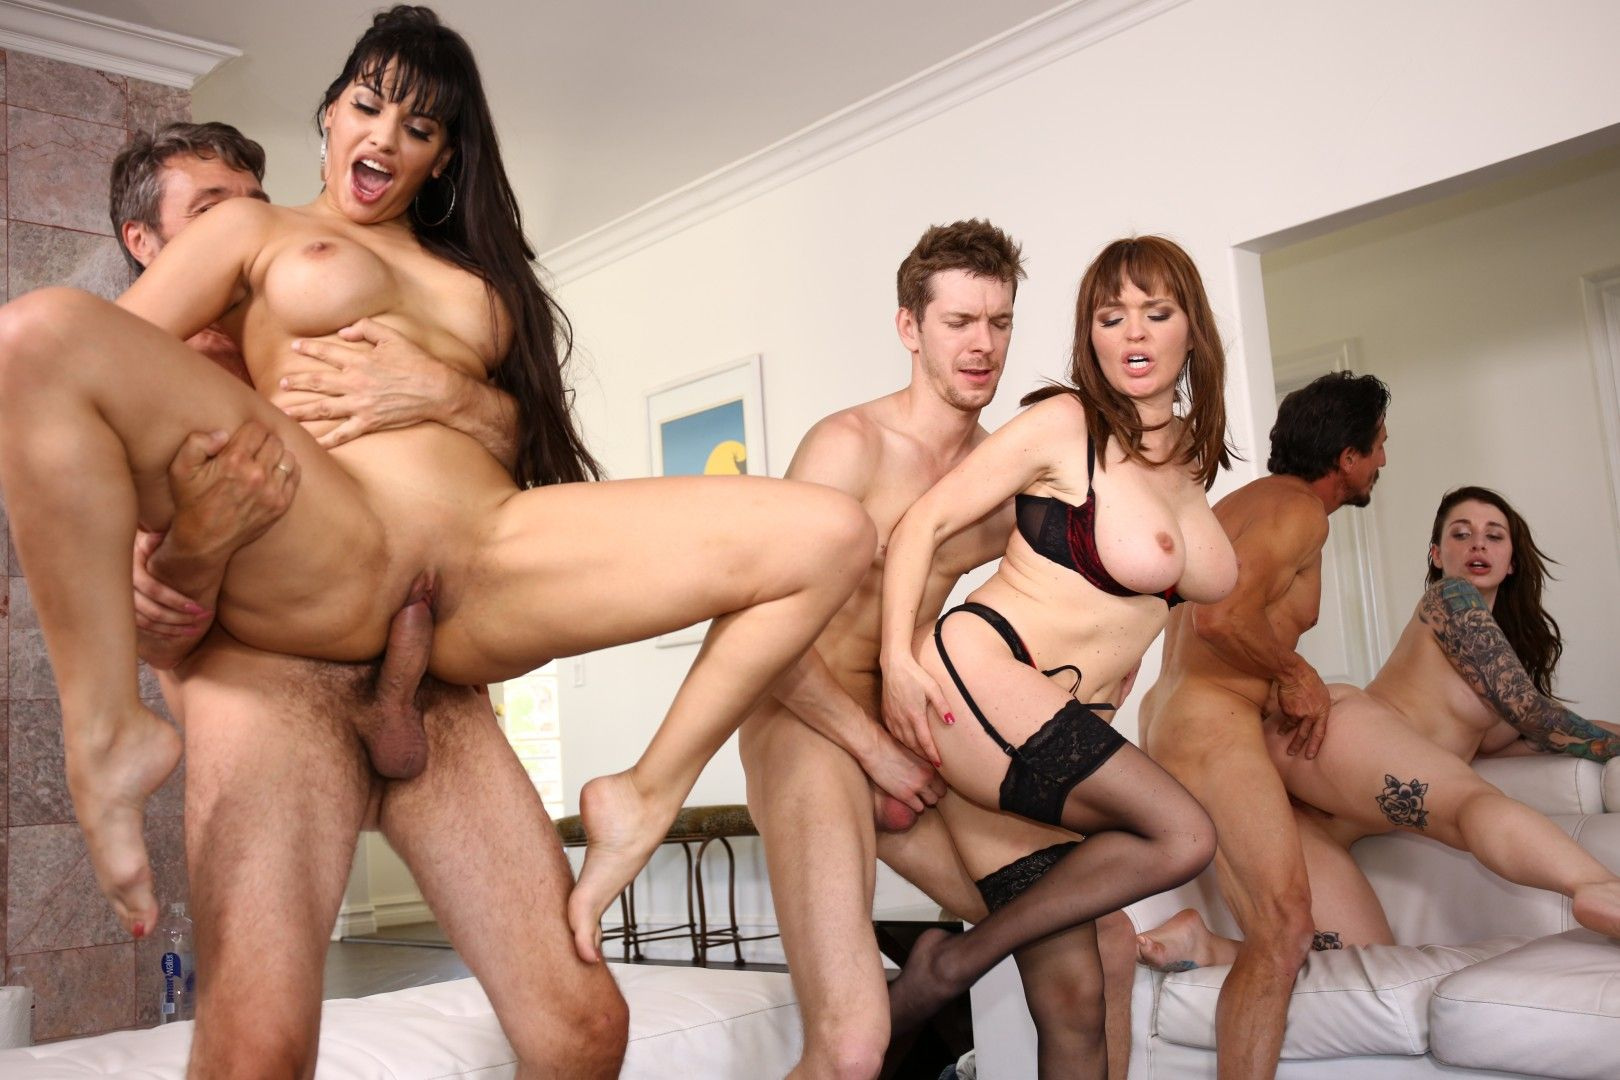 have hit lesbian ebony orgy remarkable, very useful